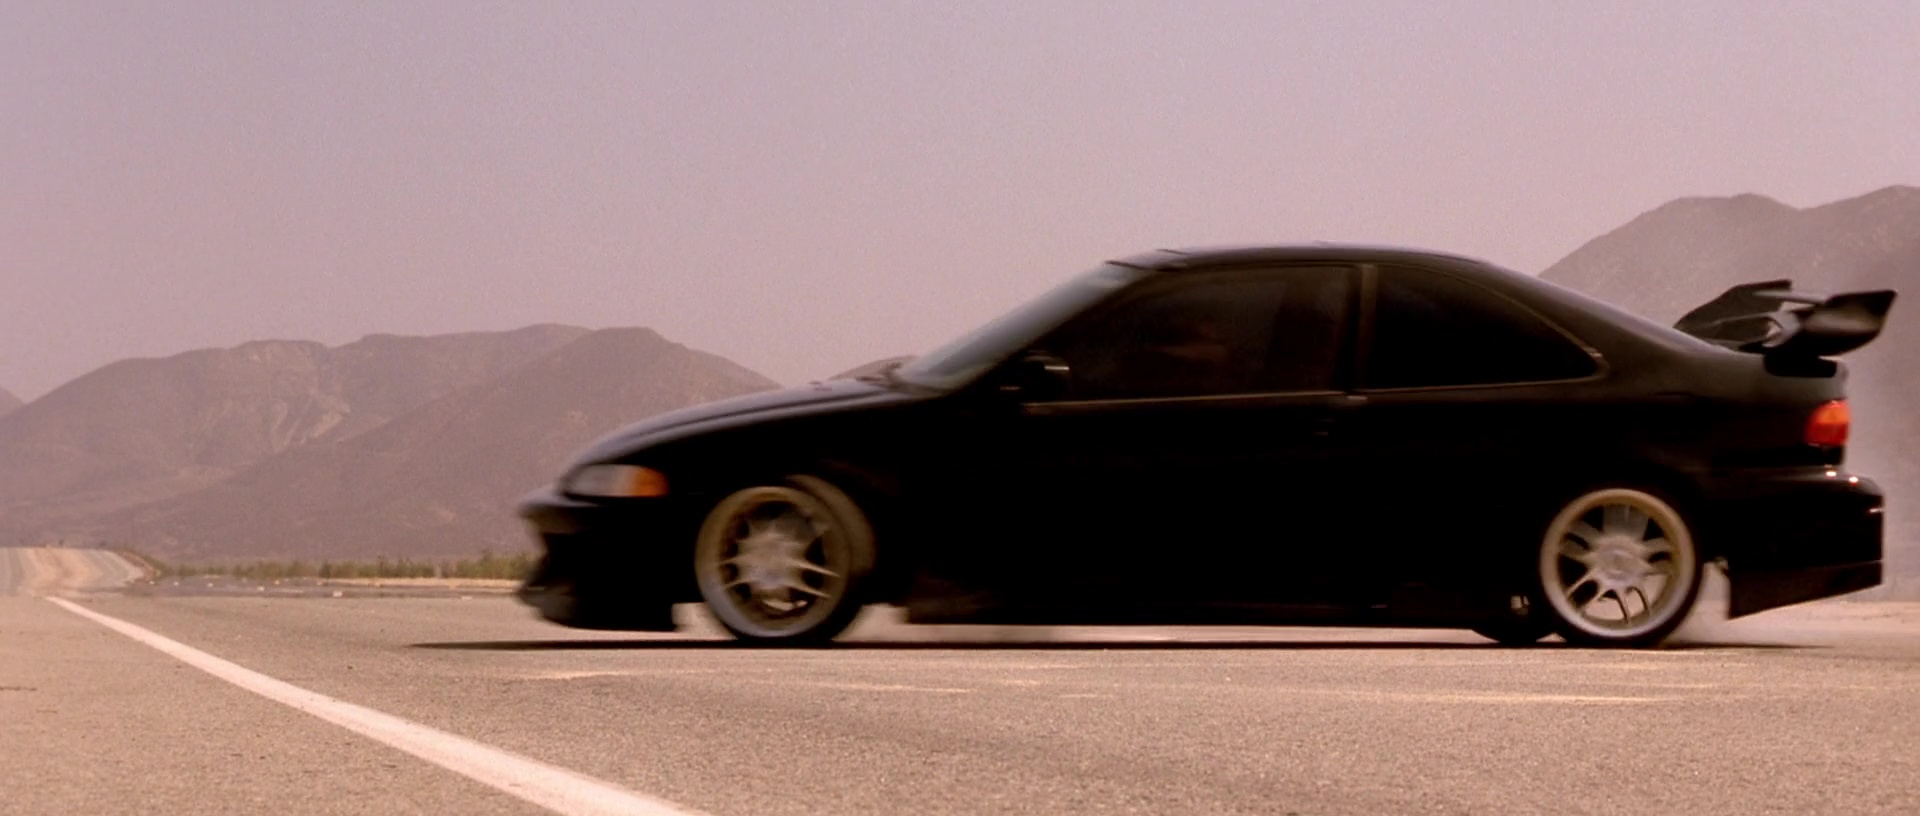 Image - Leon's Civic - Side View.jpg | The Fast and the Furious Wiki ...